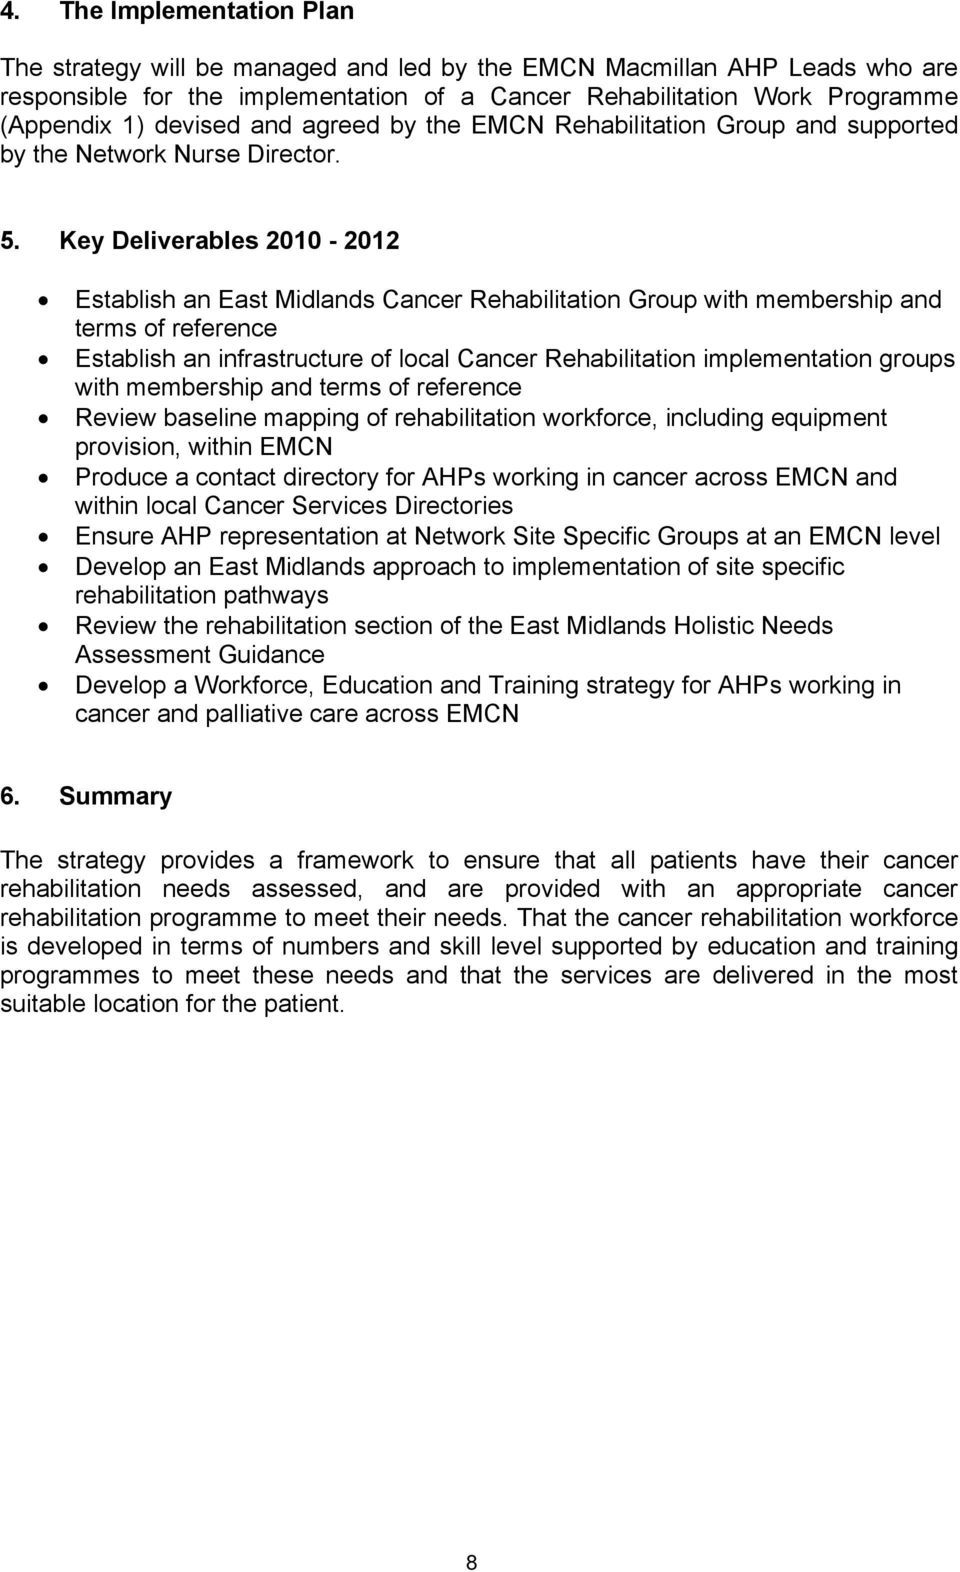 Key Deliverables 2010-2012 Establish an East Midlands Cancer Rehabilitation Group with membership and terms of reference Establish an infrastructure of local Cancer Rehabilitation implementation